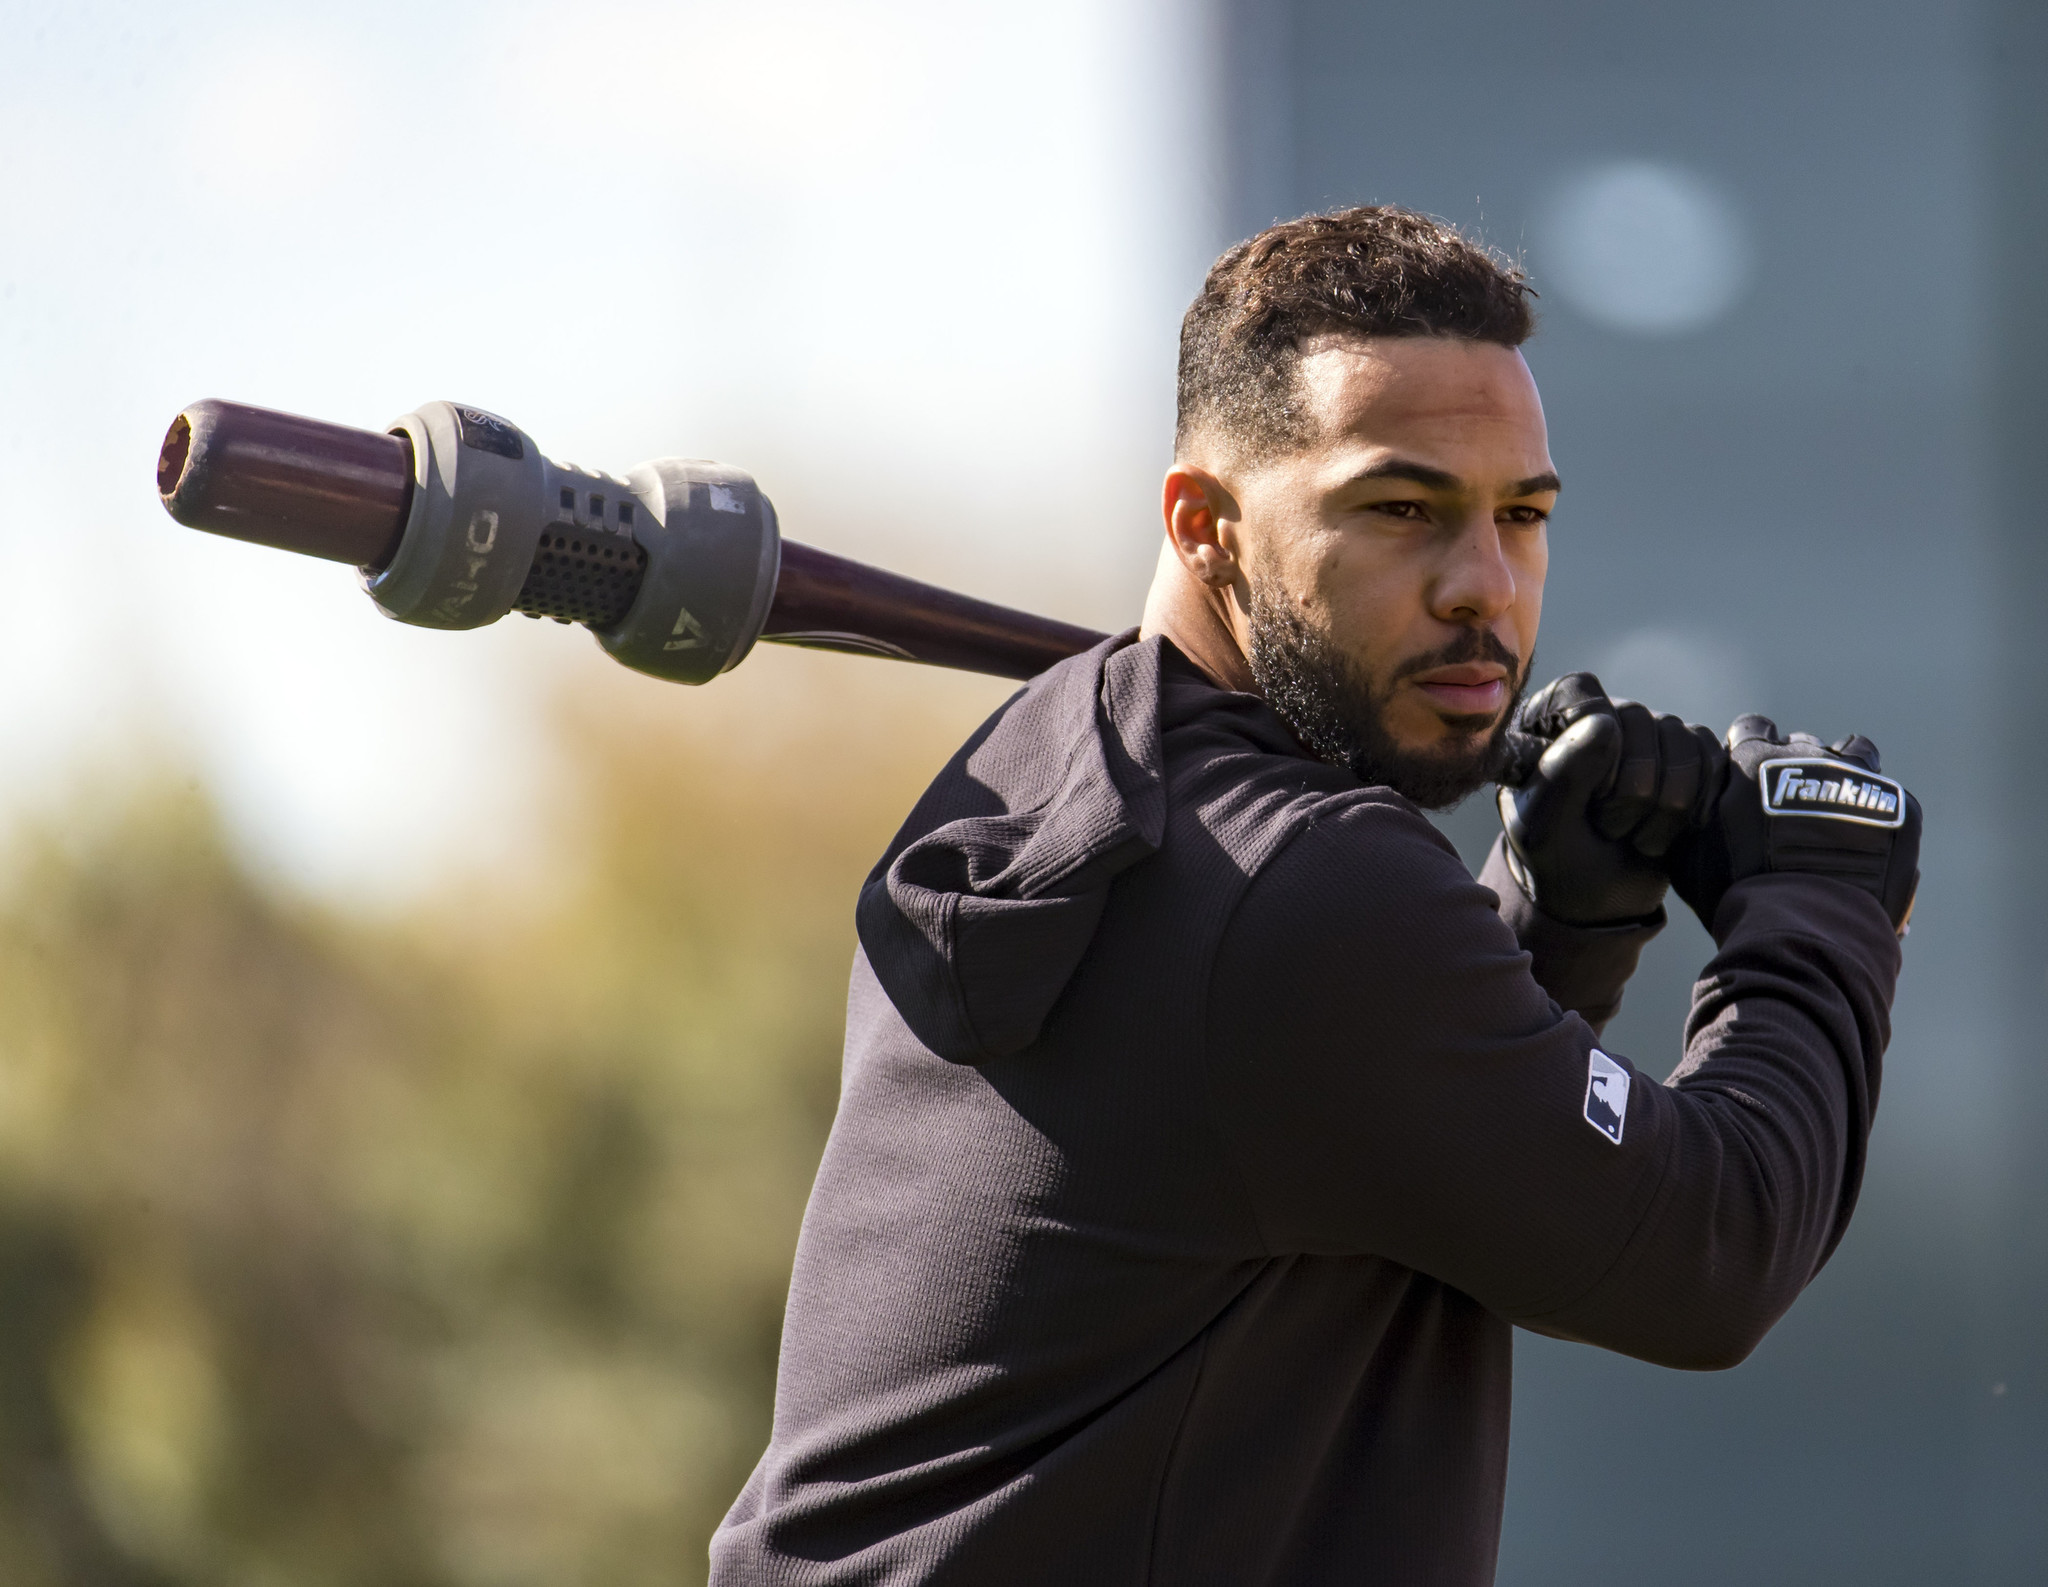 Updates from White Sox spring training: Yolmer Sanchez still can have 'fun' at second base and Nick Madrigal can be 'awesome' at that spot